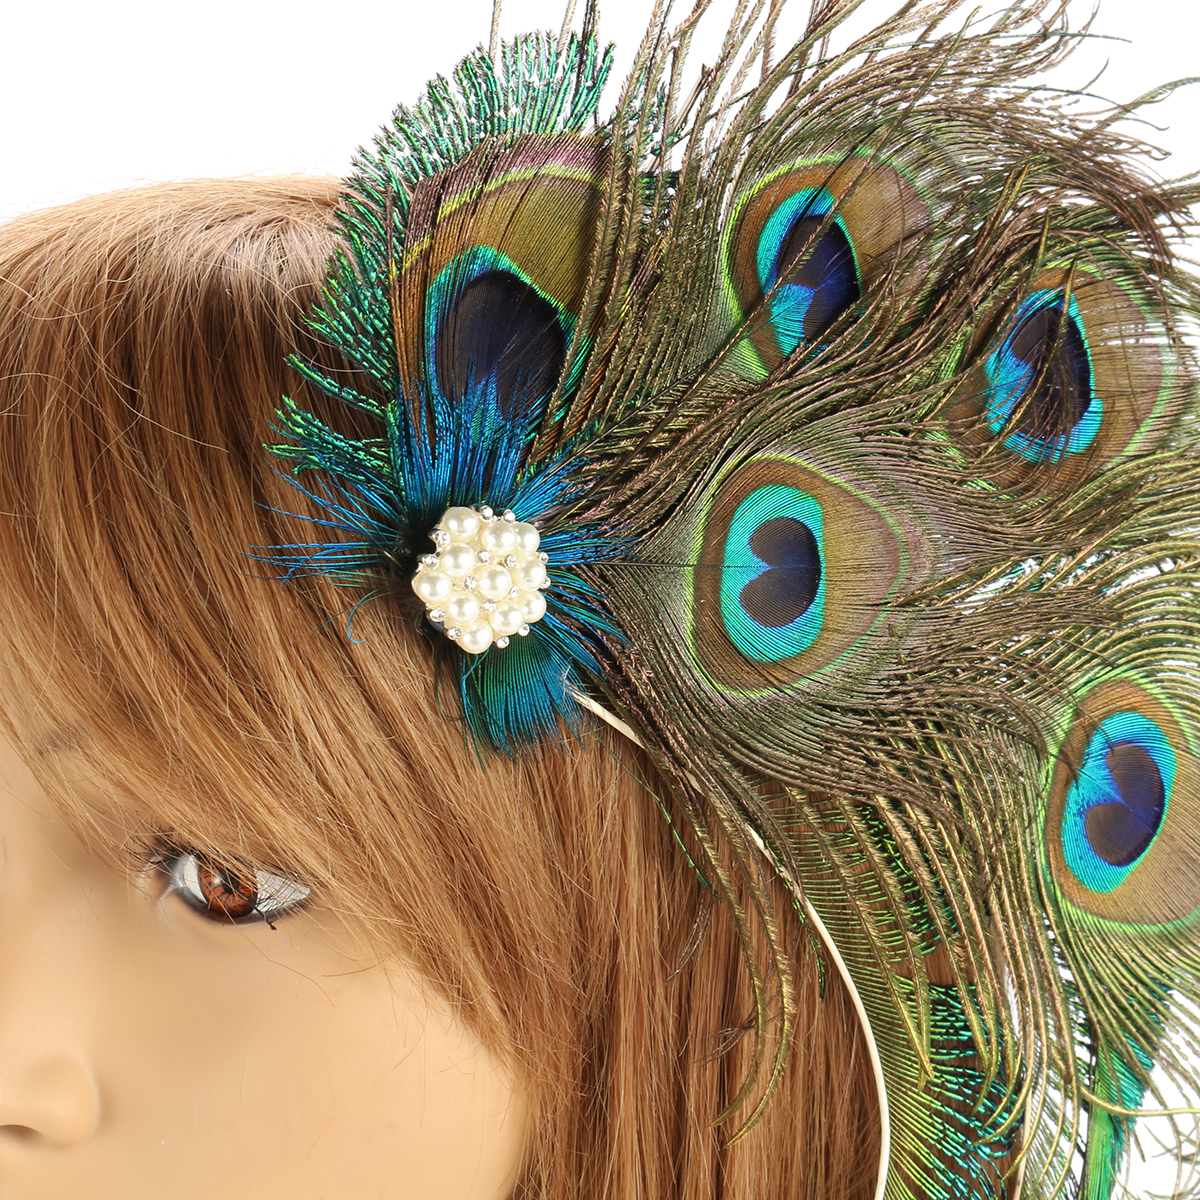 67ccd81ec5cd3 Women Peacock Feather Hair Clip 1920s Headpiece Bridal Wedding Party  Hairwear Vintage Feather Headwear Hairgrips Hair Accessory-in Hair  Accessories from ...